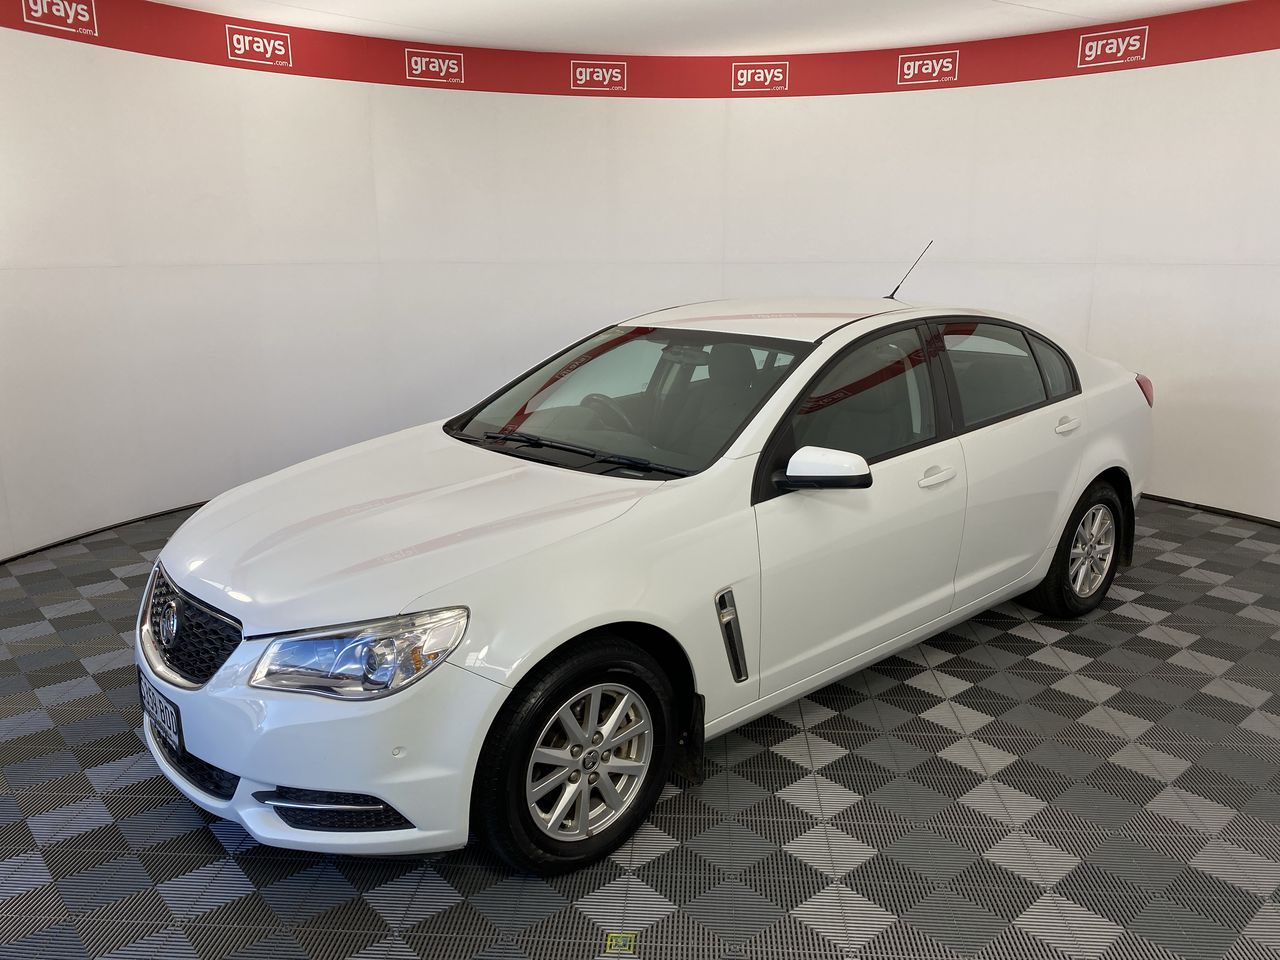 2015 Holden Commodore Evoke VF Automatic Sedan